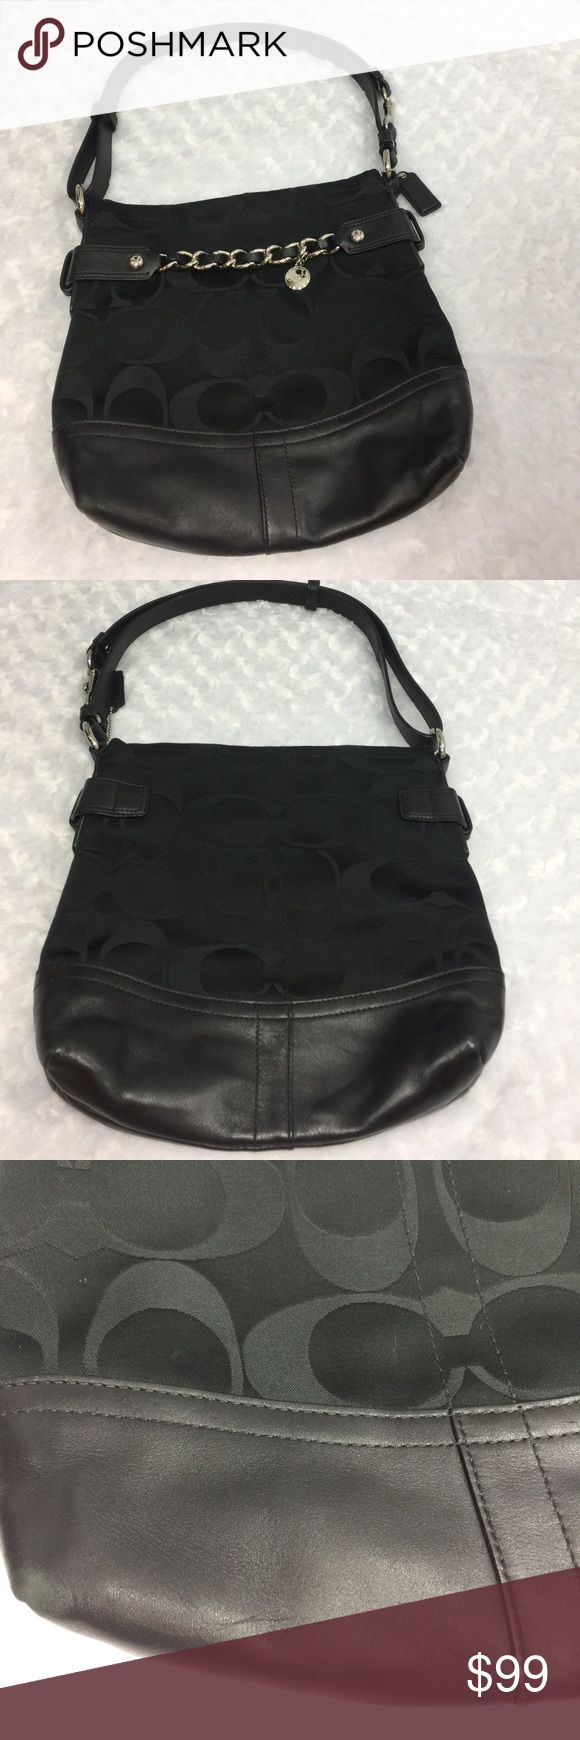 """Black signature Coach Purse Shoulder or CrossBody Very nice black on black signature coach purse. Trimmed with black leather and silver chain. Strap converts from shoulder to cross body. Purse measures 12"""" wide, 10.5"""" tall. I've only used a couple of times. The inside is very clean. The outside is pretty much flawless except for one surface scratch at the bottom of the bag as pictured. Non-smoker. comes with a coach storage bag which I have stored it in. Coach Bags Shoulder Bags"""